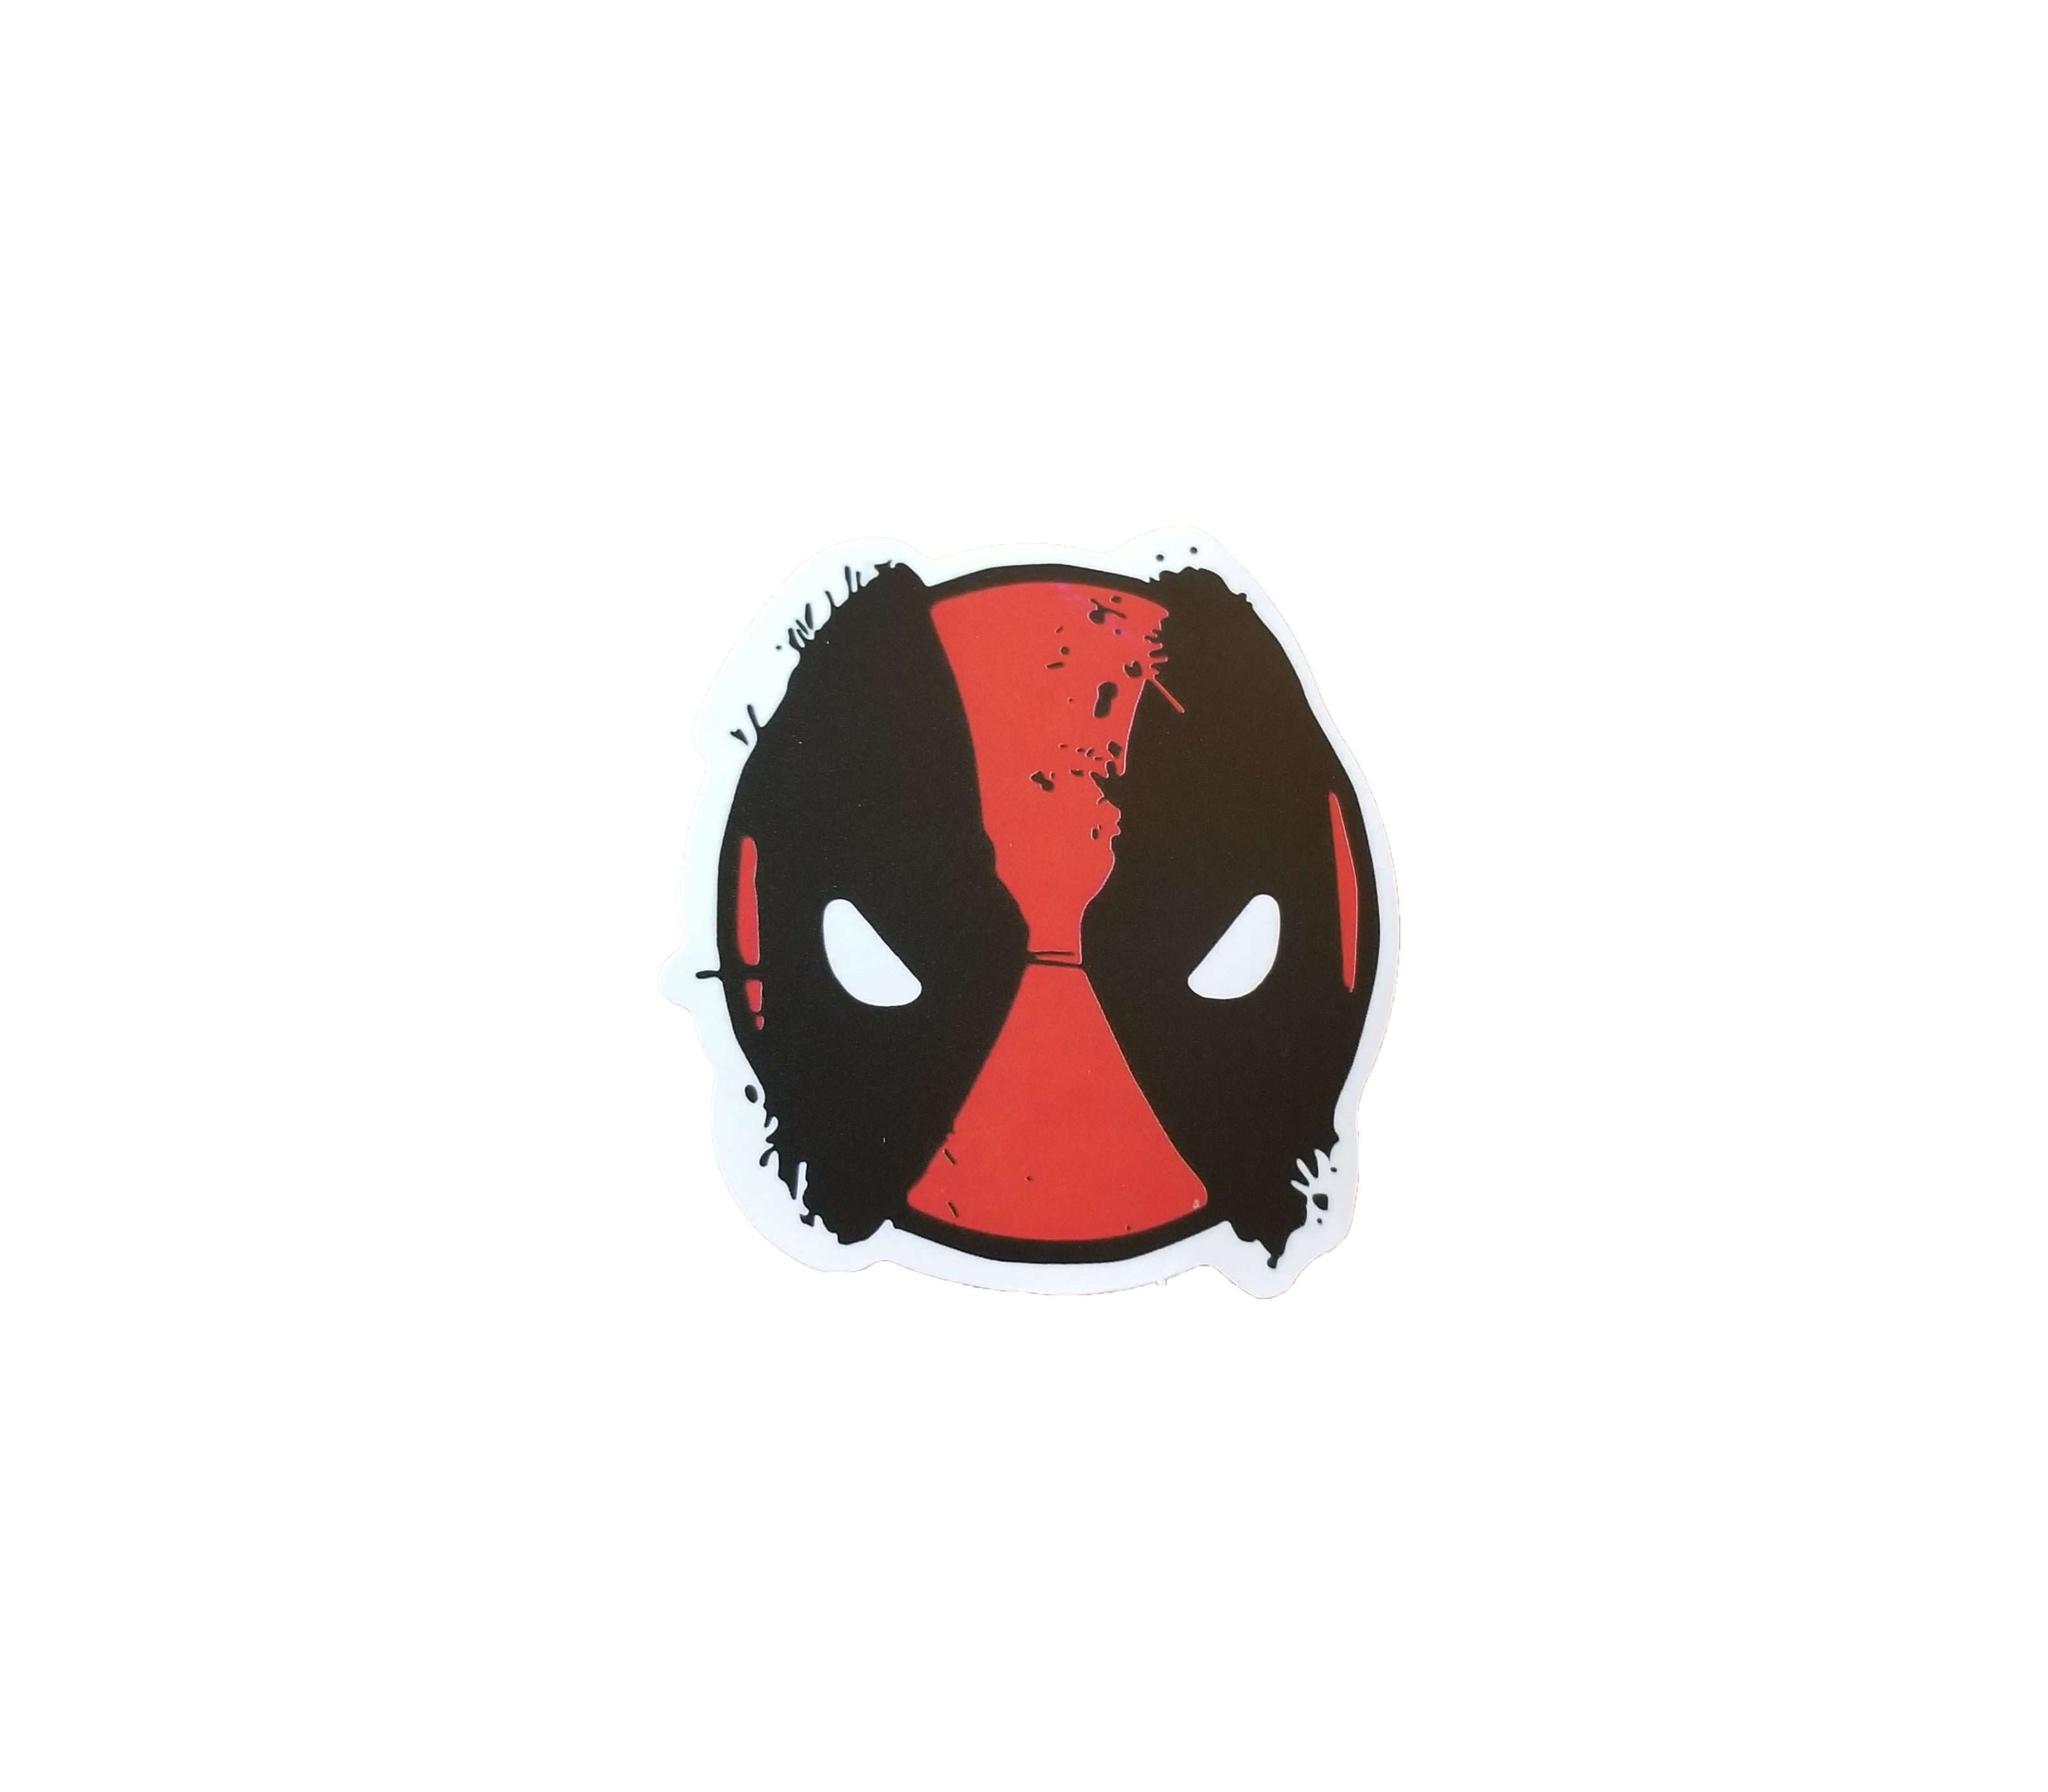 Cute but serious Deadpool Head sticker. Looks cartoonish but awesome.